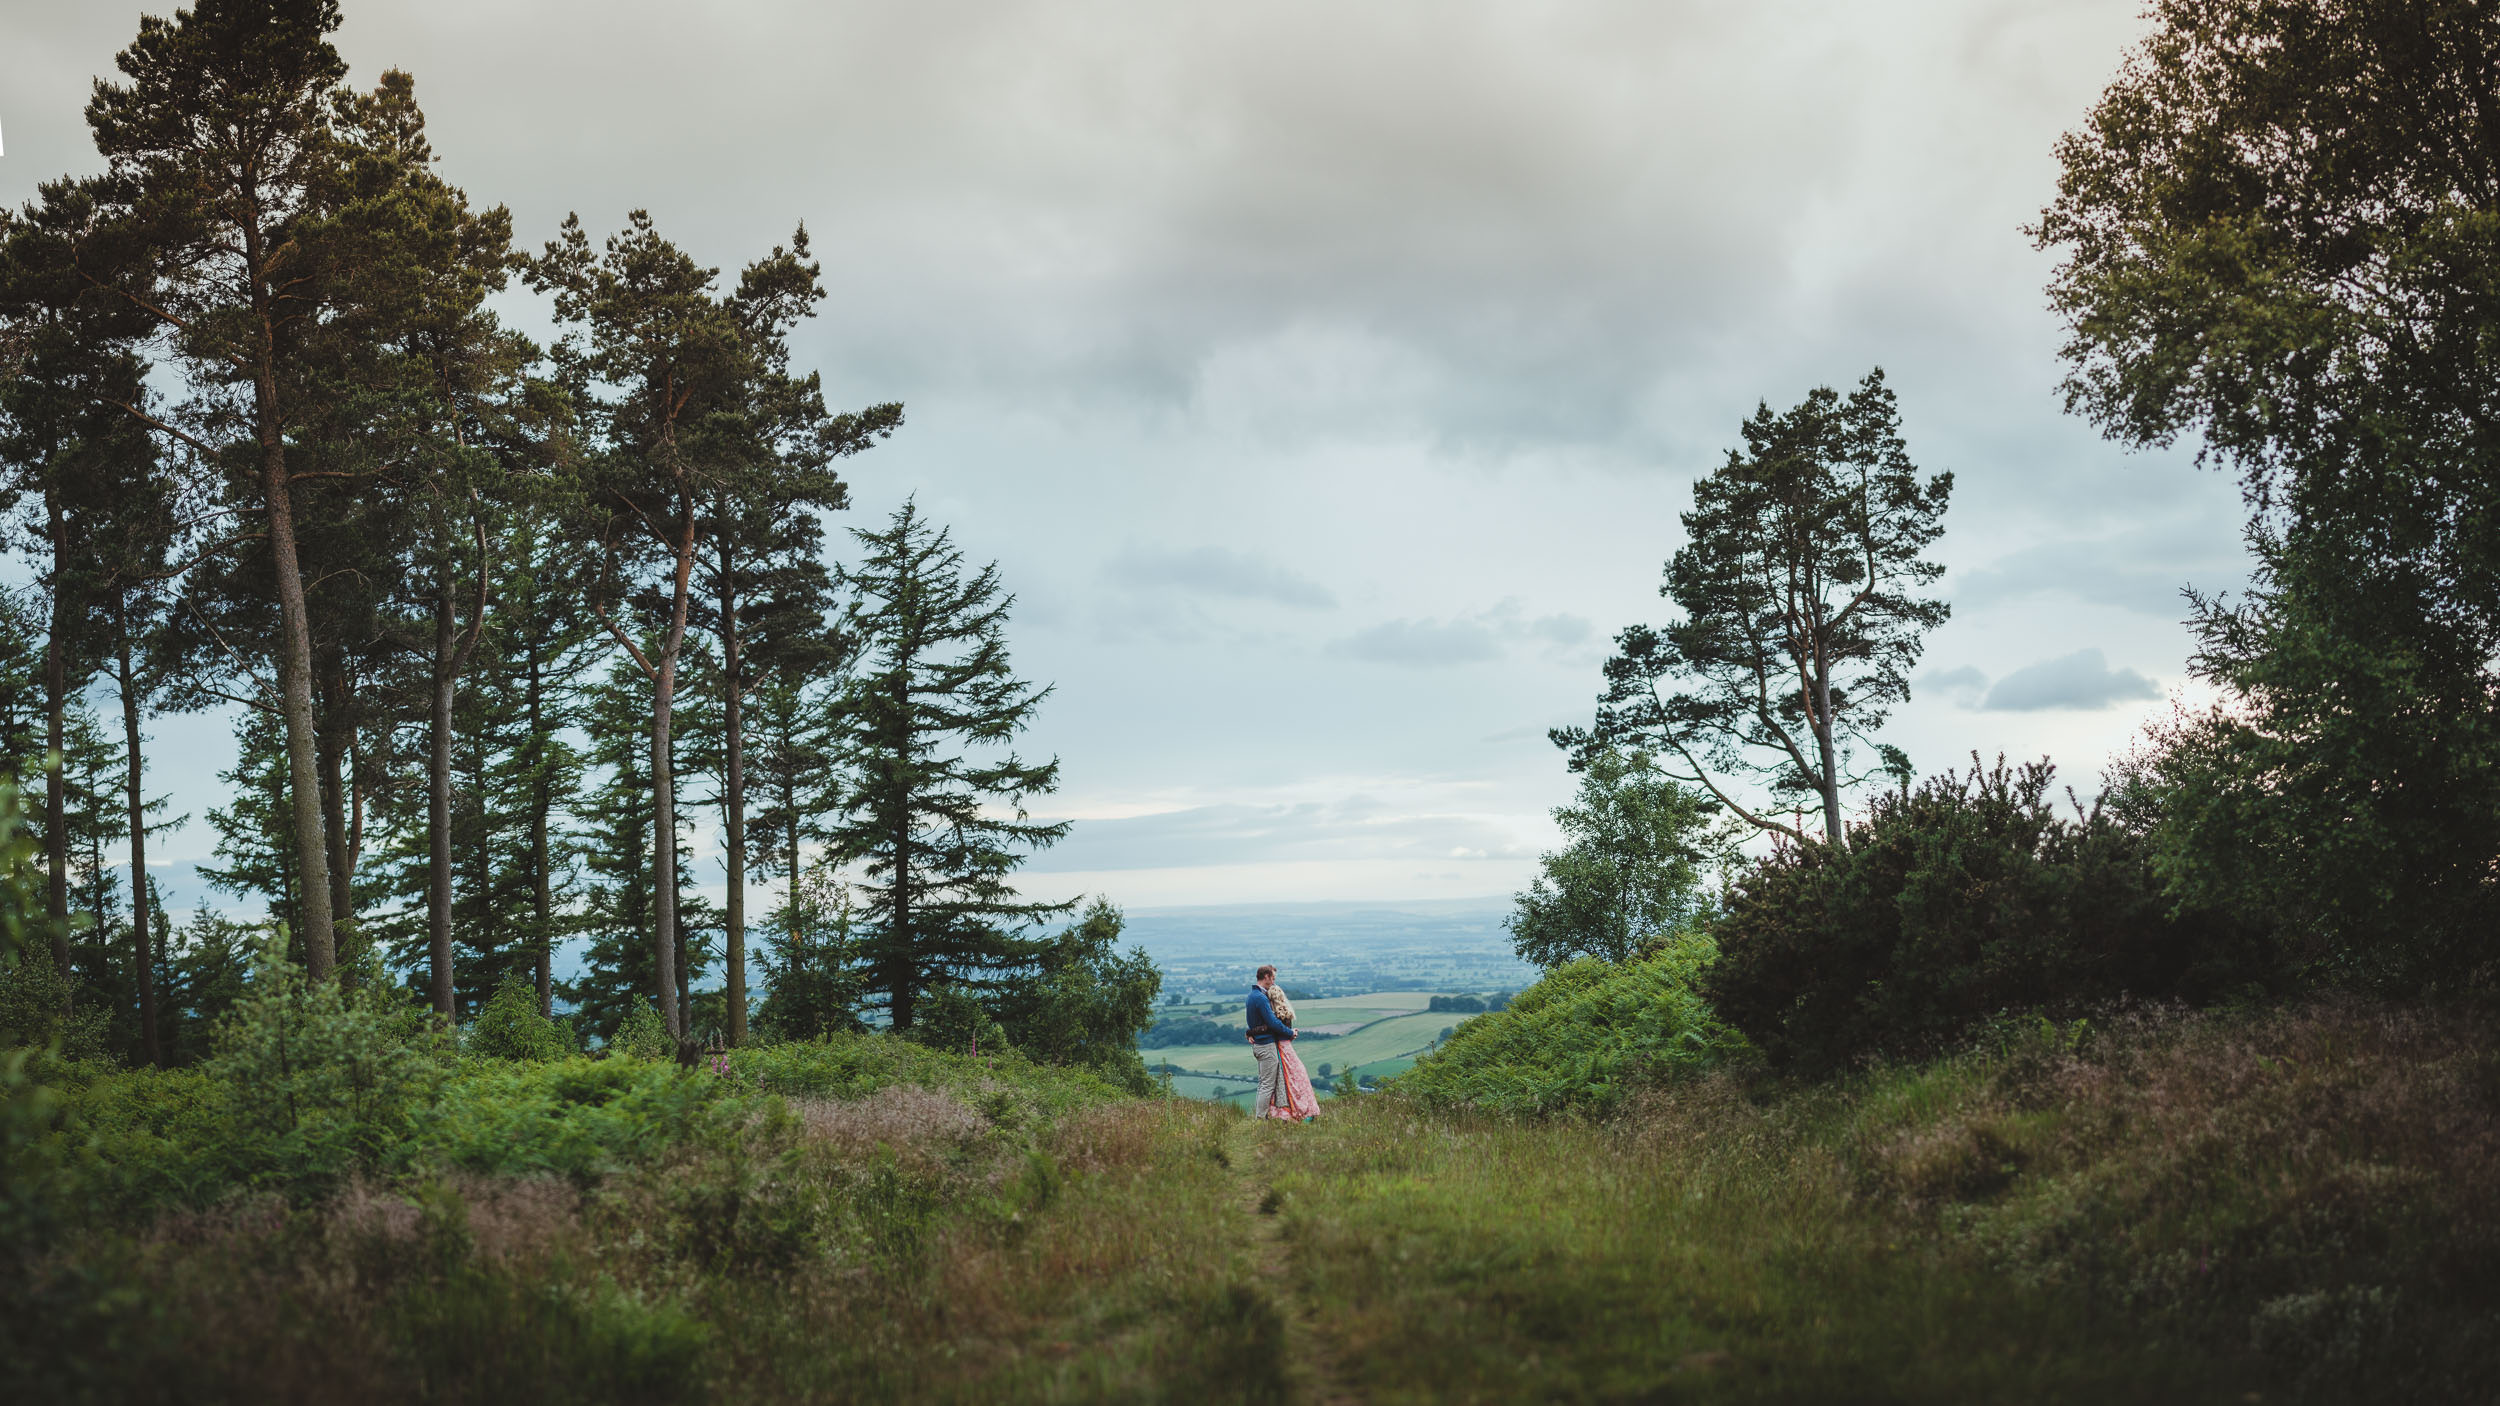 A wide panorama of a country path high in the Yorkshire hills with an engaged couple cuddling